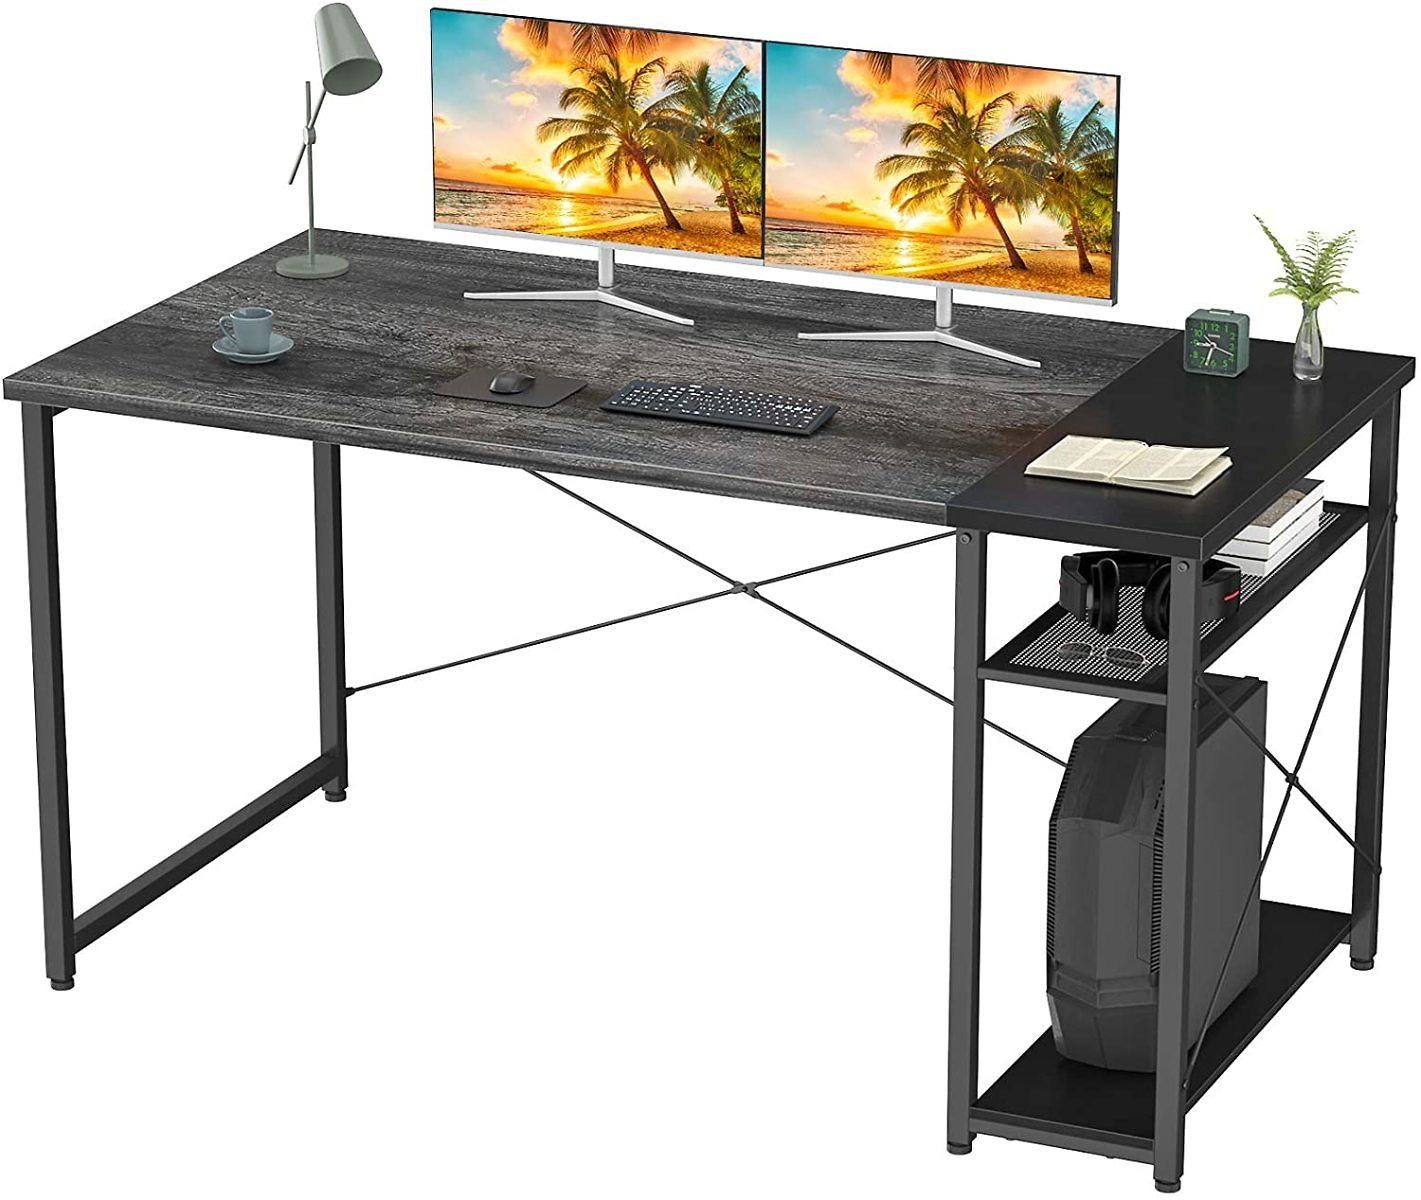 Homfio Desk with Shelves, 47 Inch Industrial Wood Office Desk with Storage Shelf, Vintage Study Writing Table for Home Office Work, Sturdy Room Desk for Gaming Workstation, Black Oak and Black